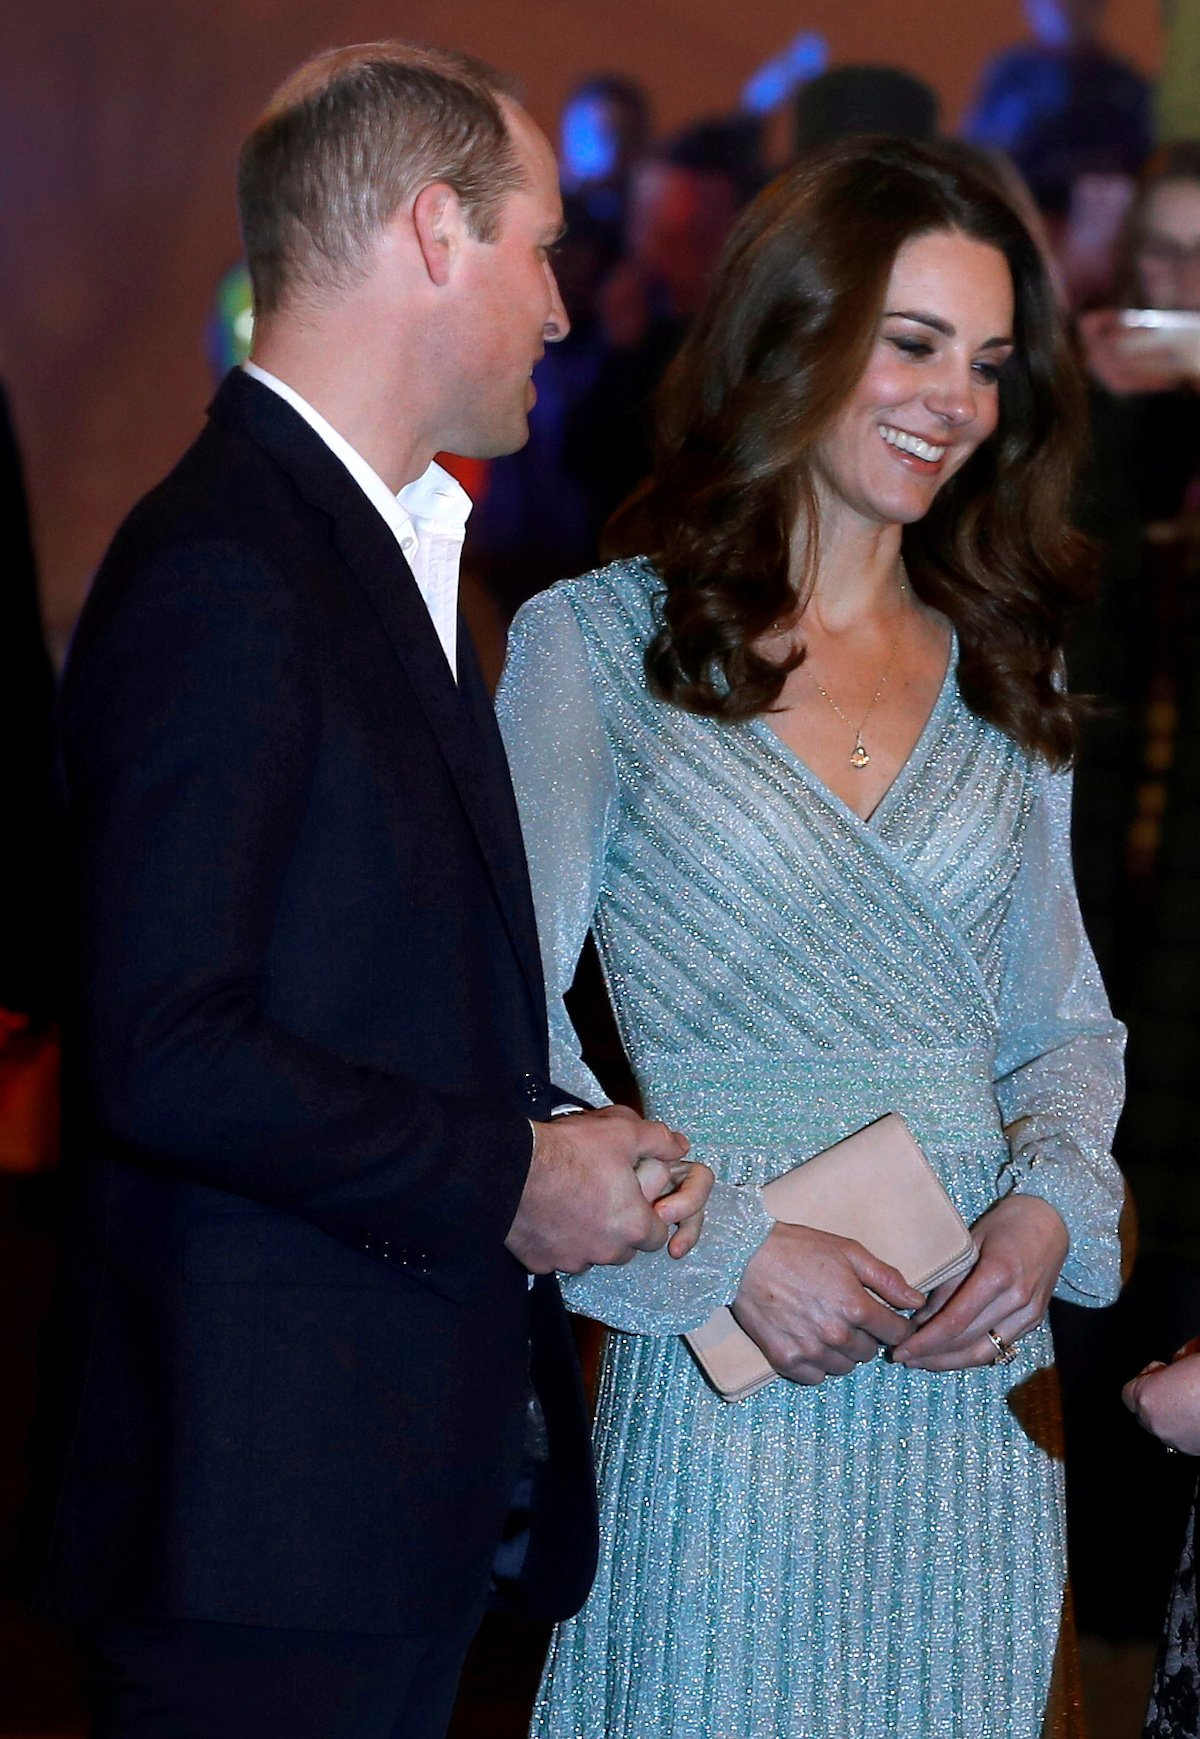 Britain's Prince William and Catherine Duchess of Cambridge visit to celebrate inspirational young people from Northern Ireland at the Empire Hall in Belfast, Northern Ireland February 27, 2019. REUTERS/Phil Noble